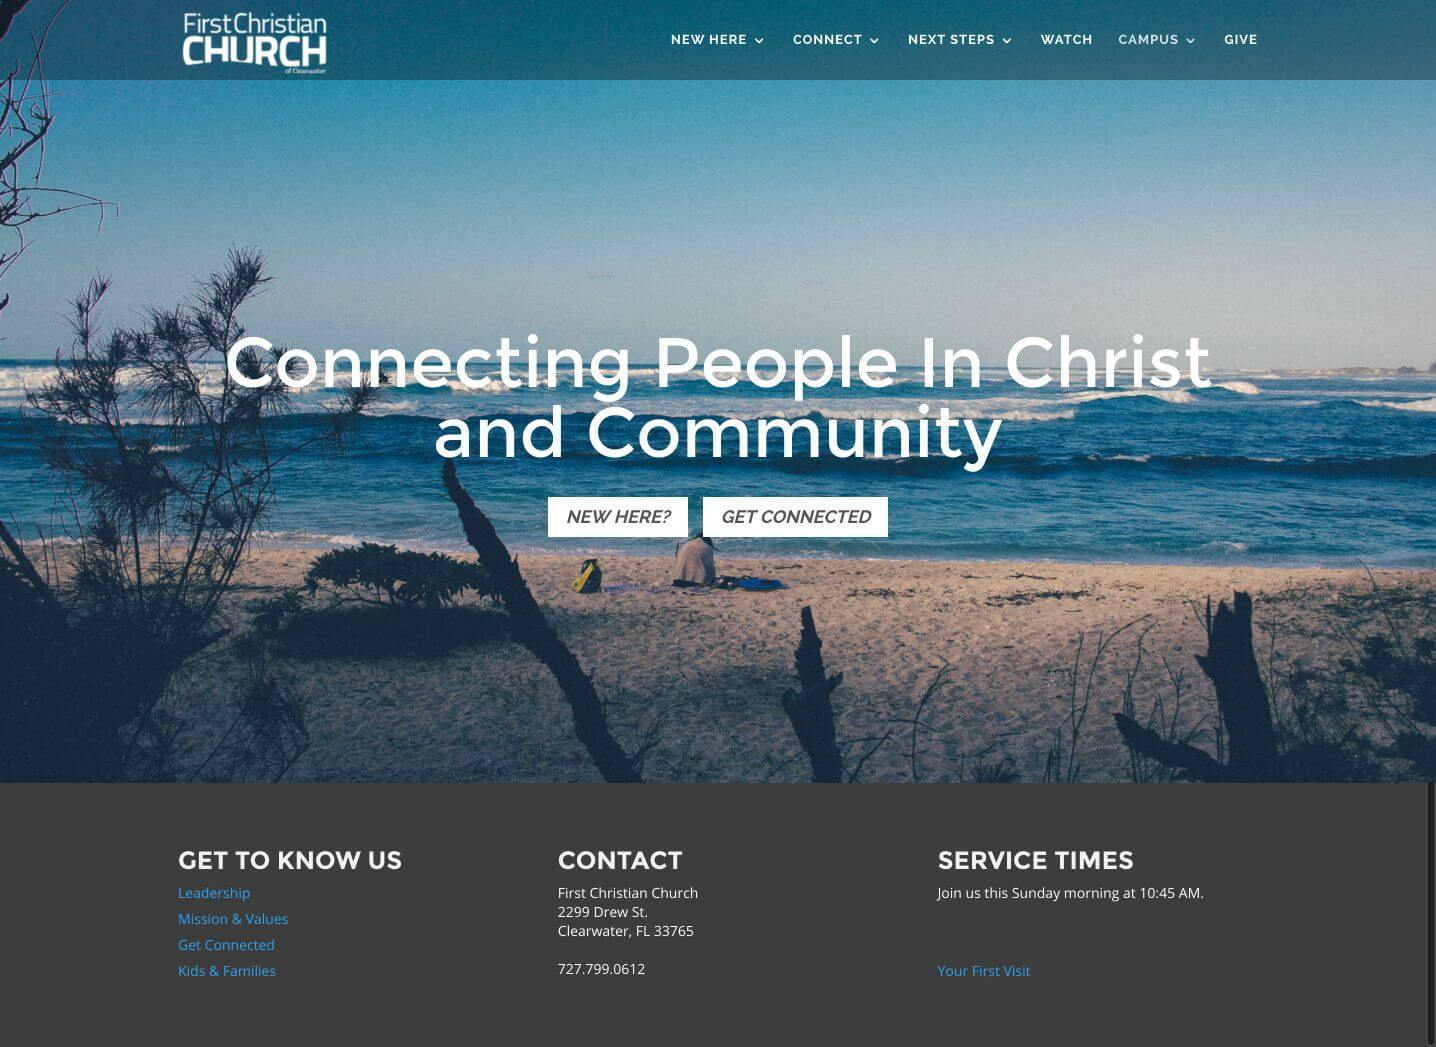 First Christian Church - Churches Using Divi